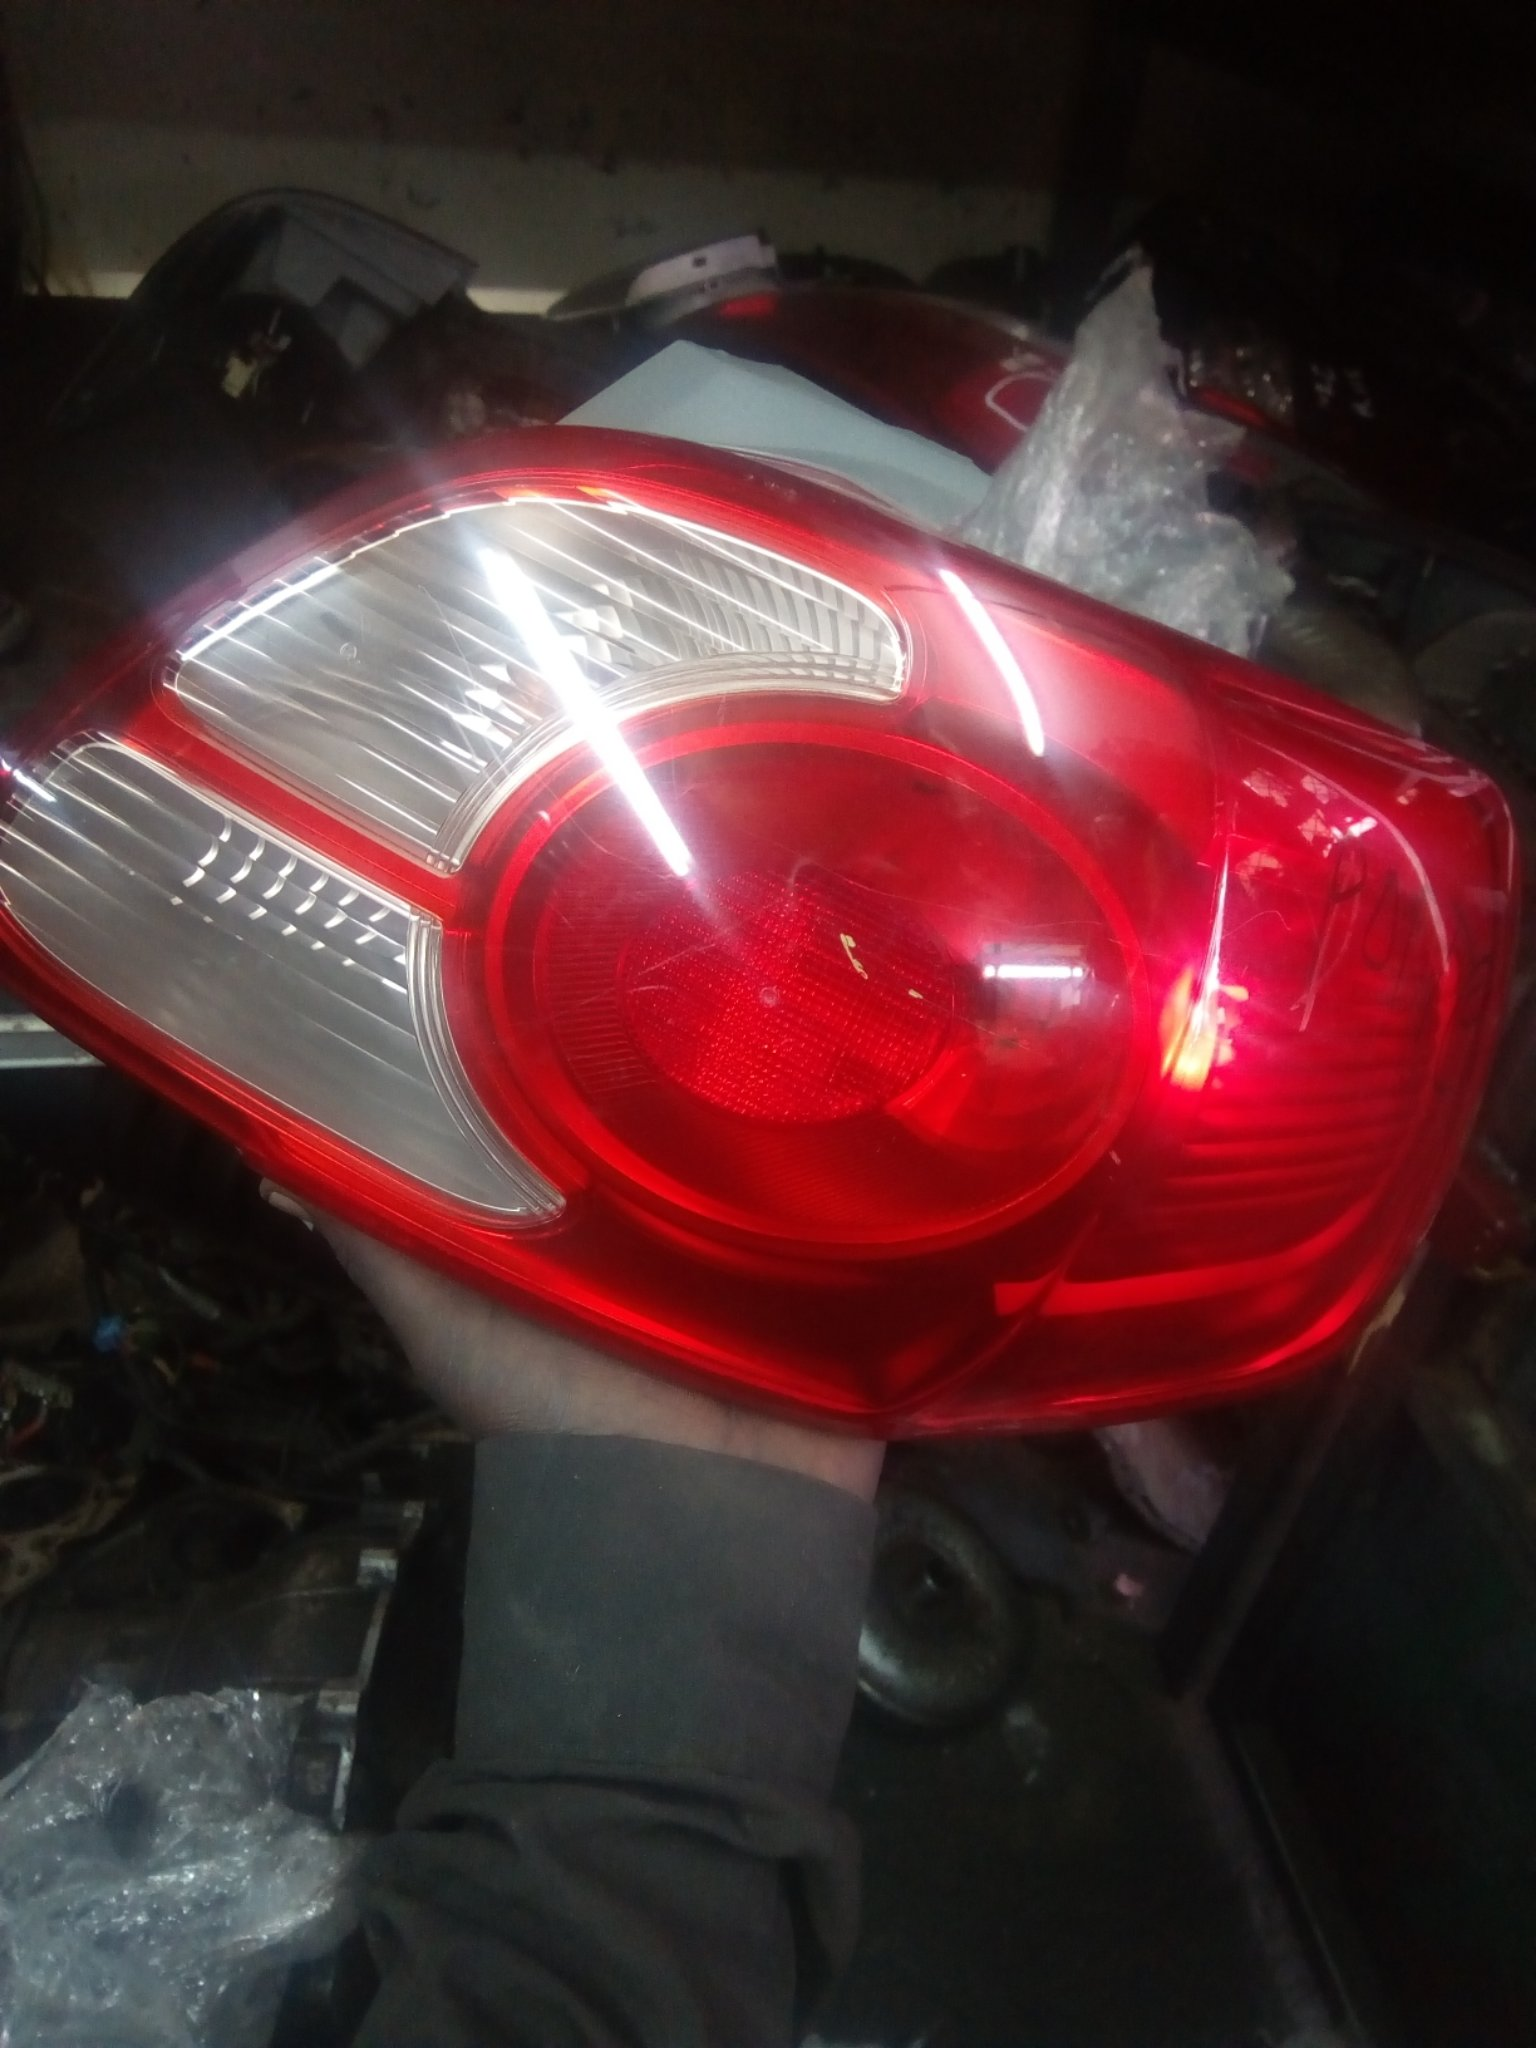 Toyota Porte tail light 00303